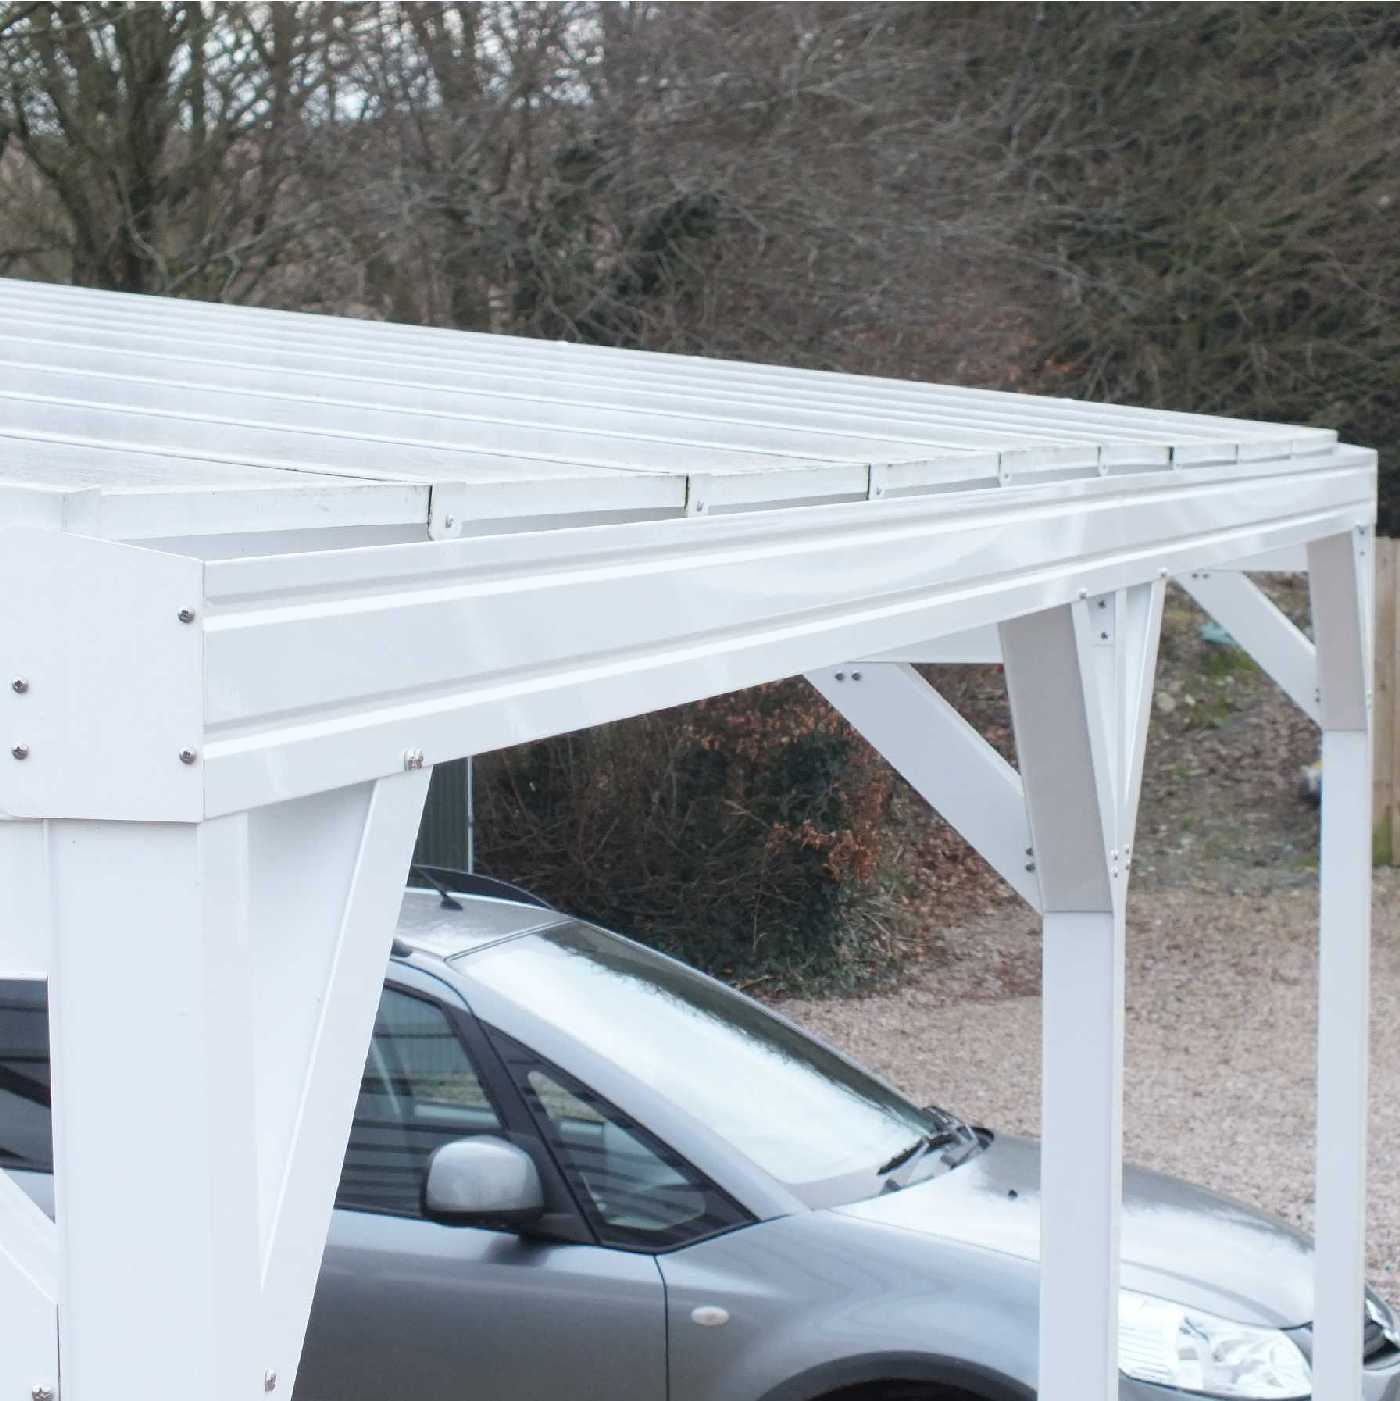 Omega Smart Free-Standing, MonoPitch Roof Canopy with 16mm Polycarbonate Glazing - 7.0m (W) x 3.5m (P), (8) Supporting Posts from Omega Build